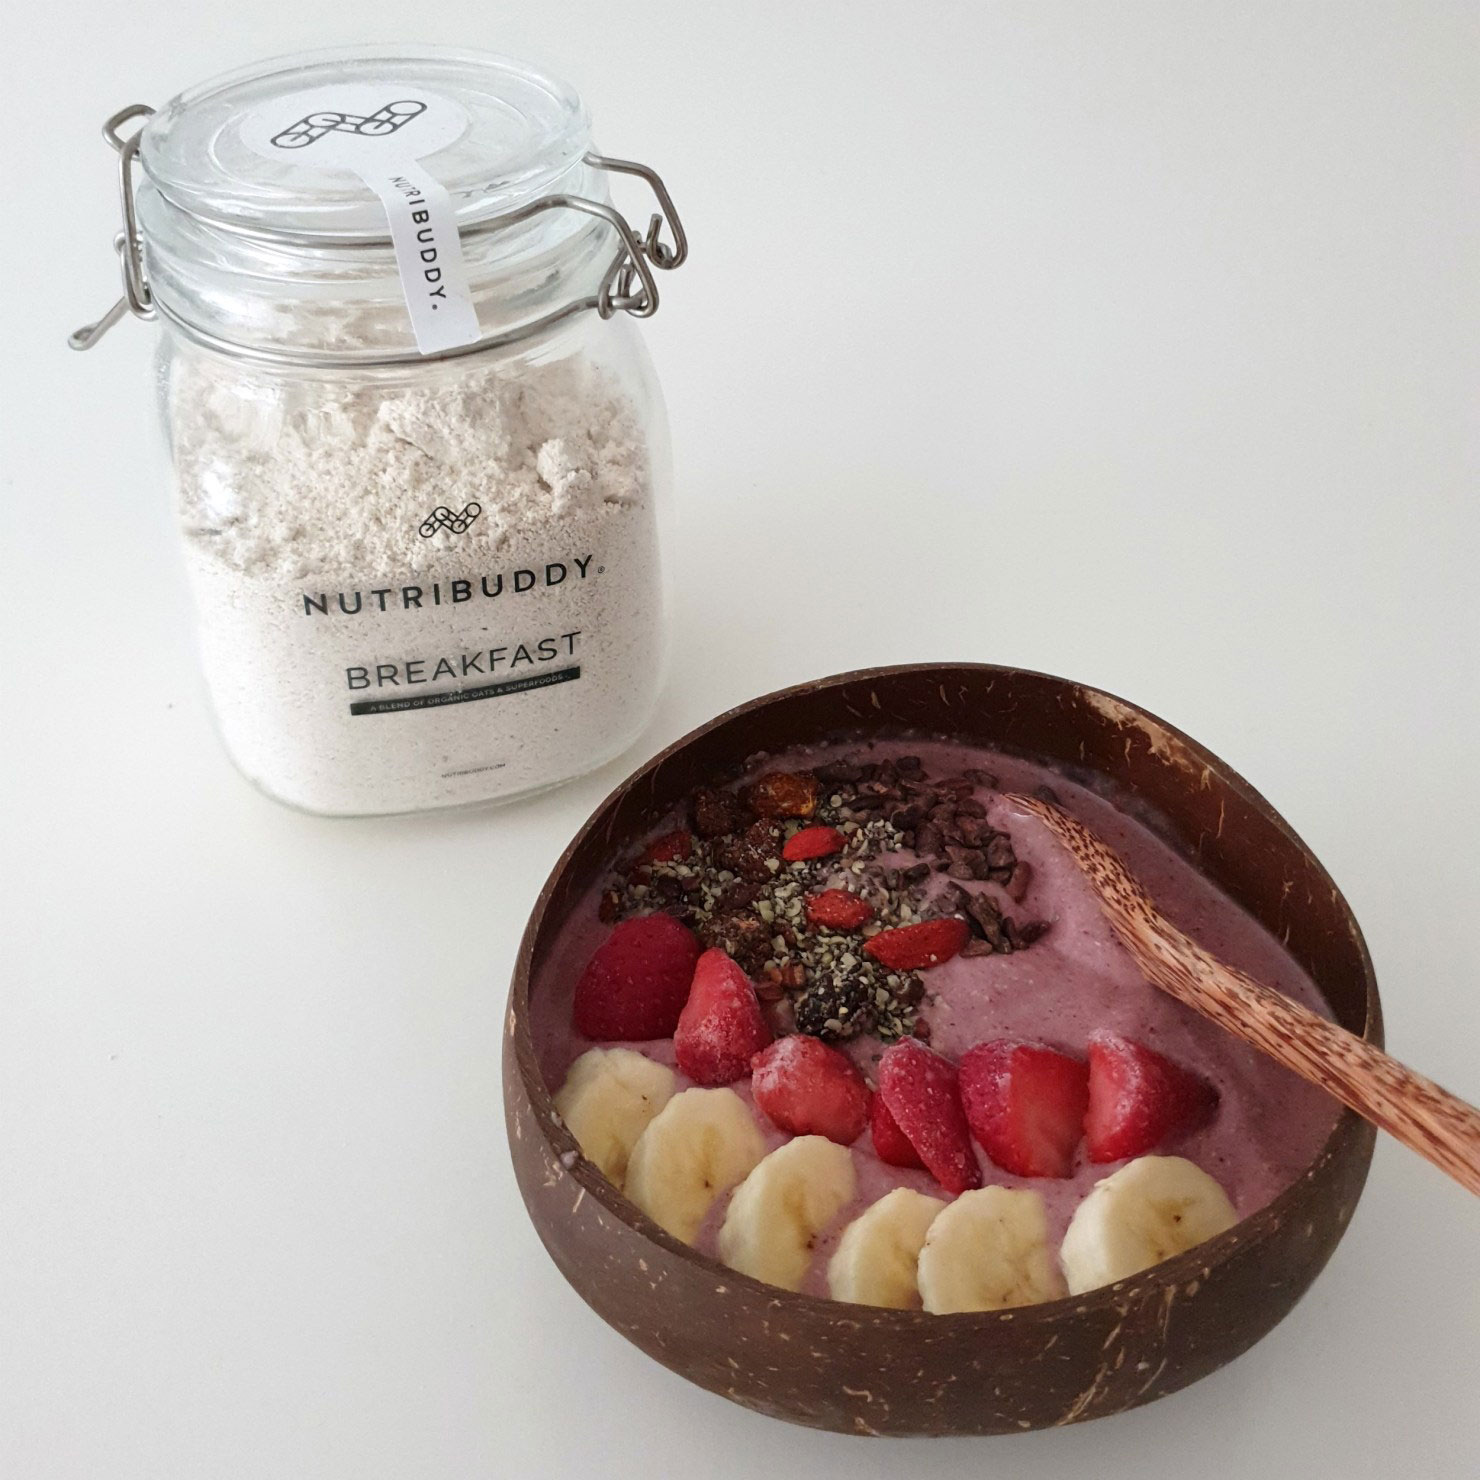 nutribuddy breakfast smoothie bowl by morethangreens